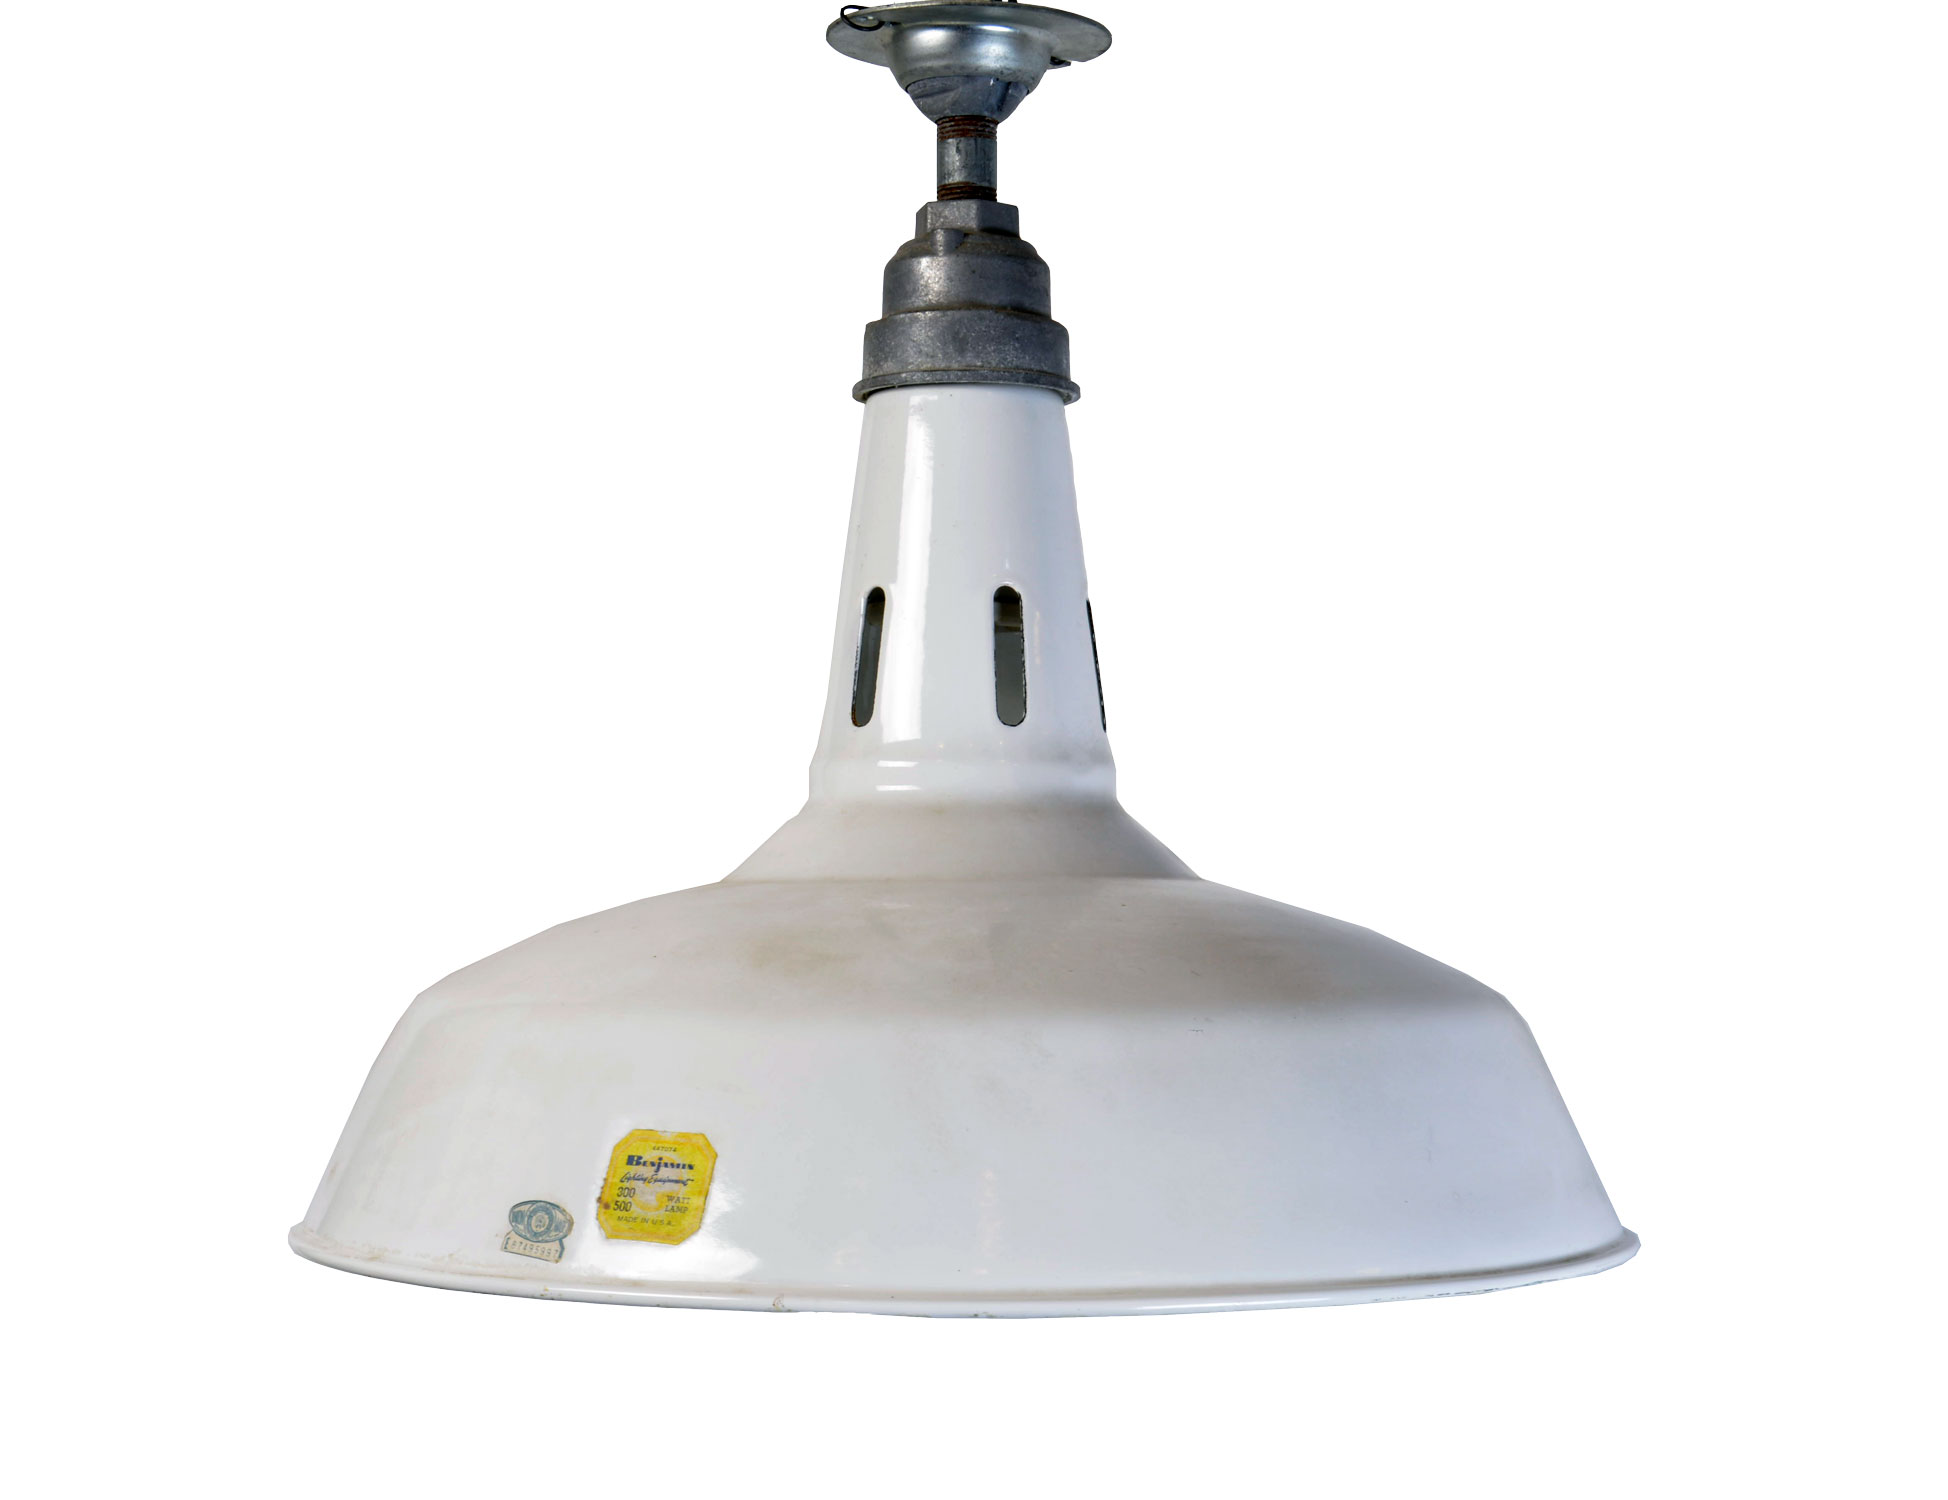 white enamel industrial light with vent